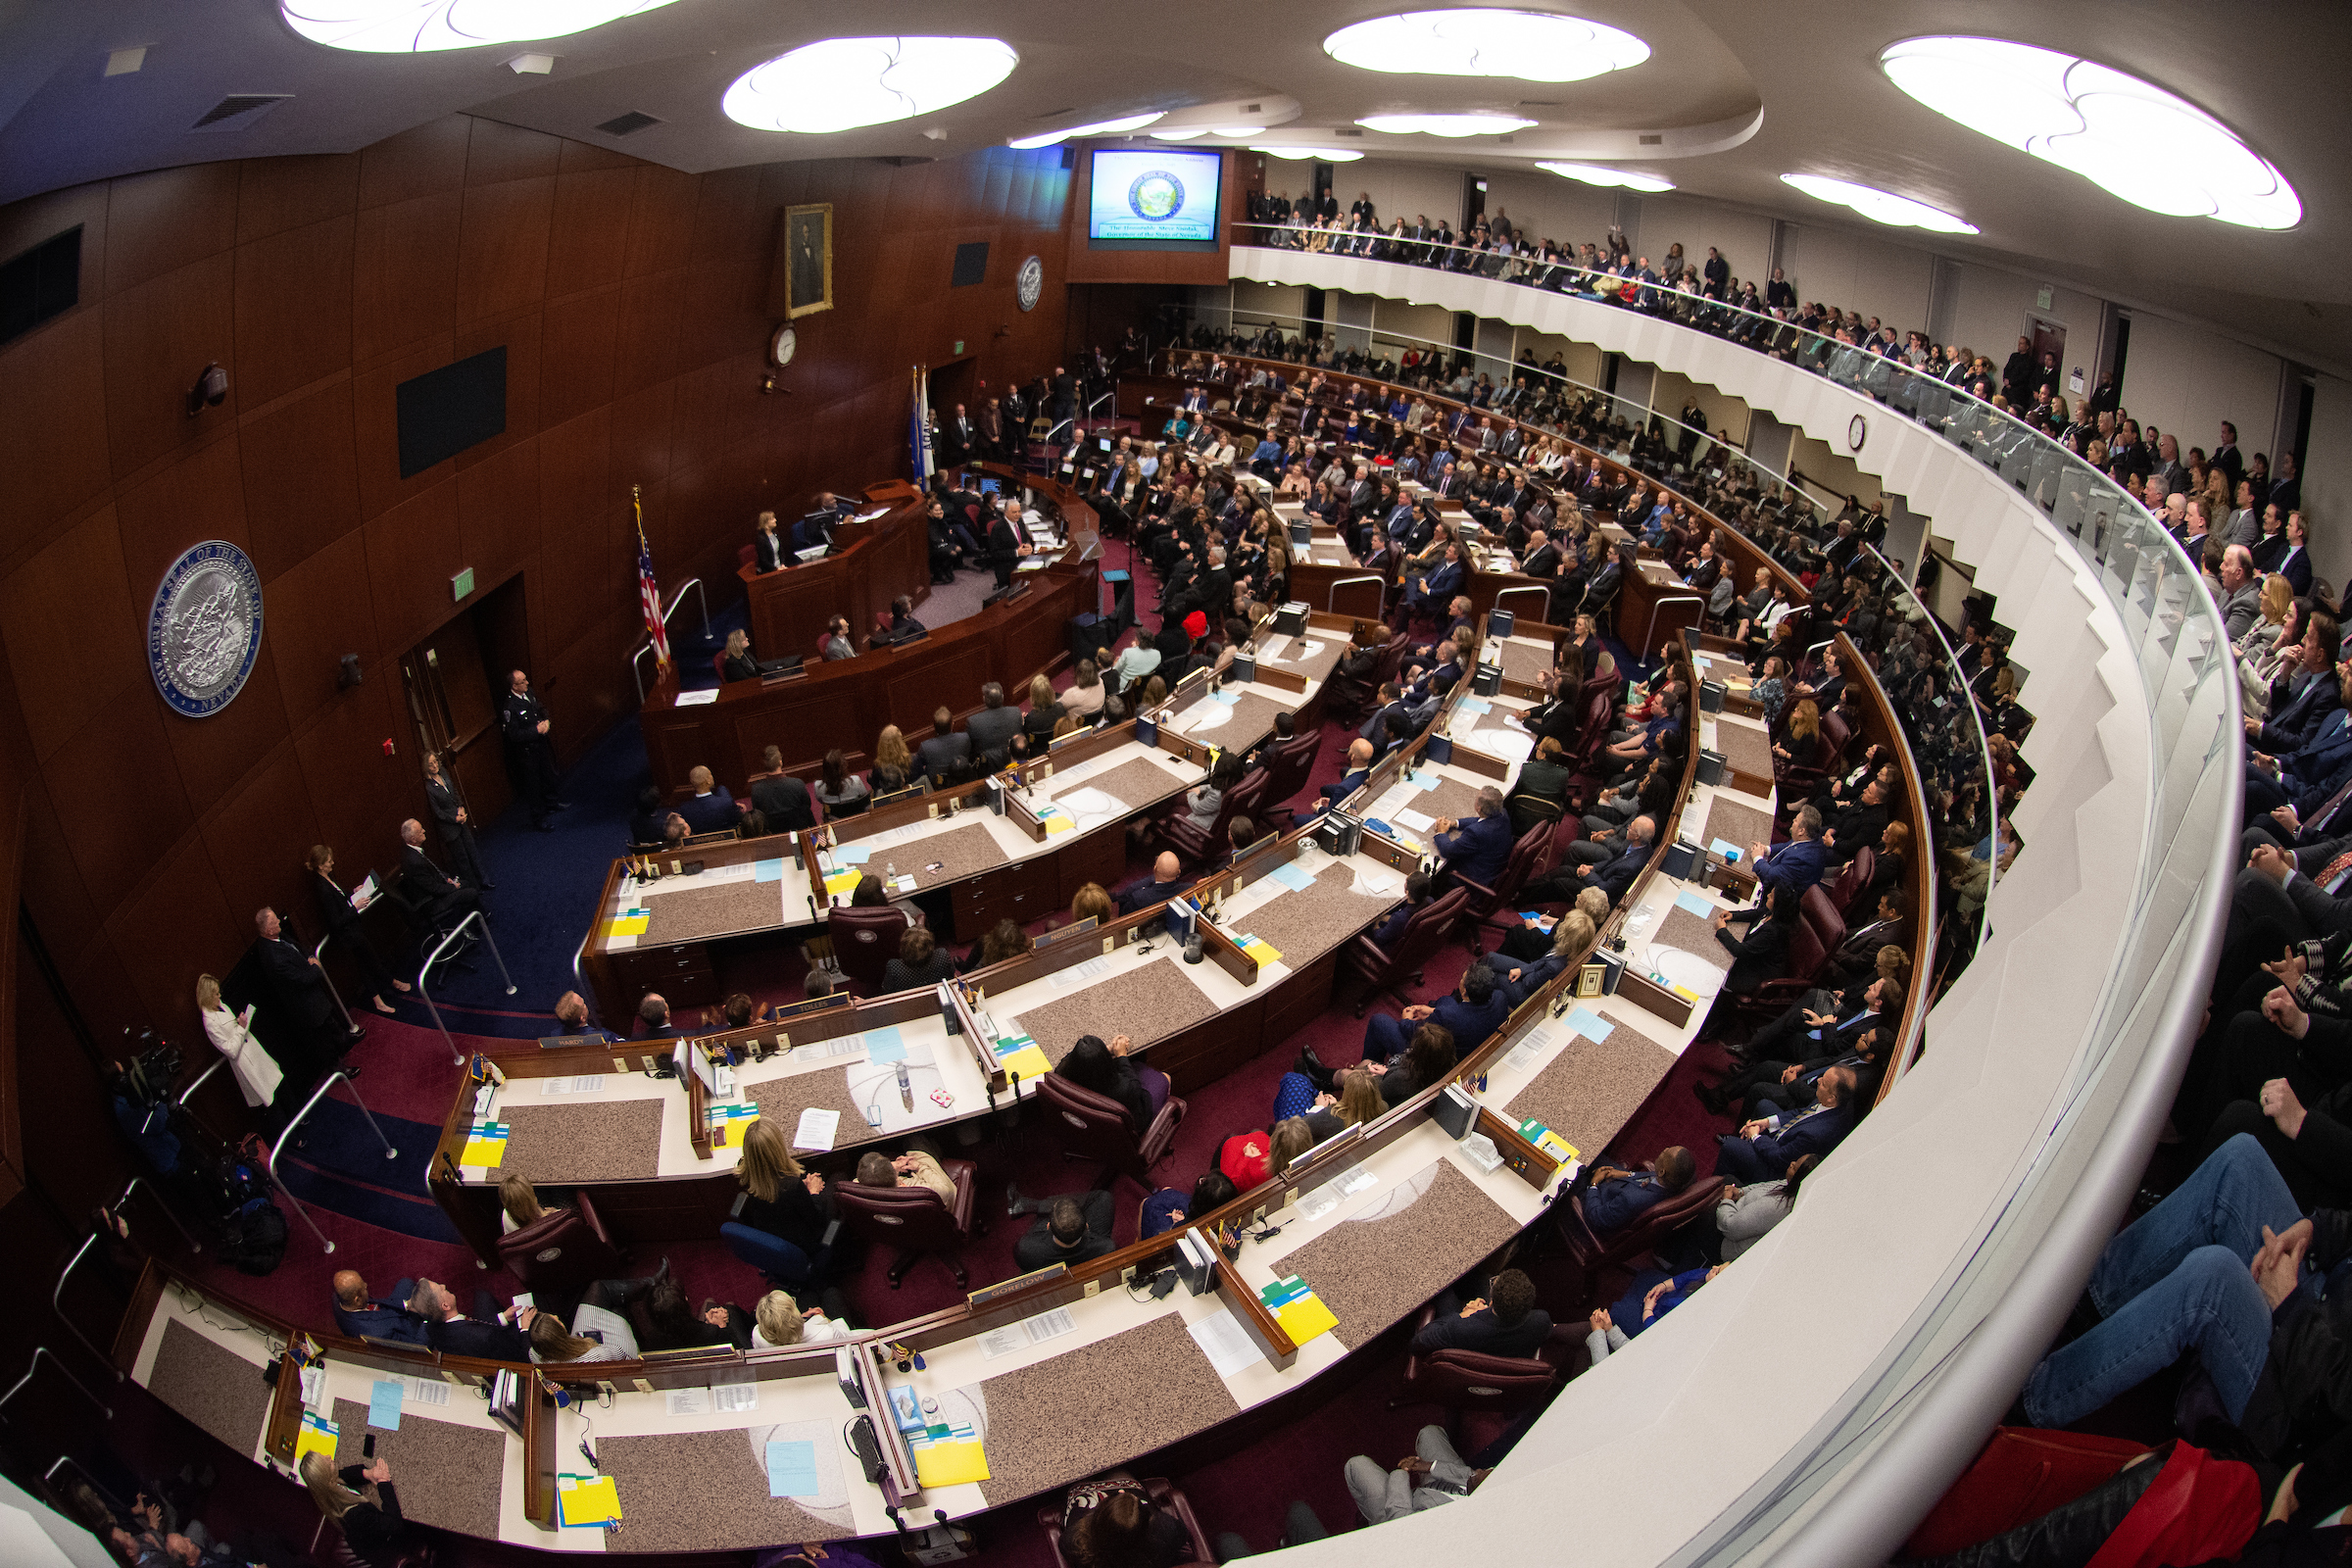 Assembly Chambers during speech